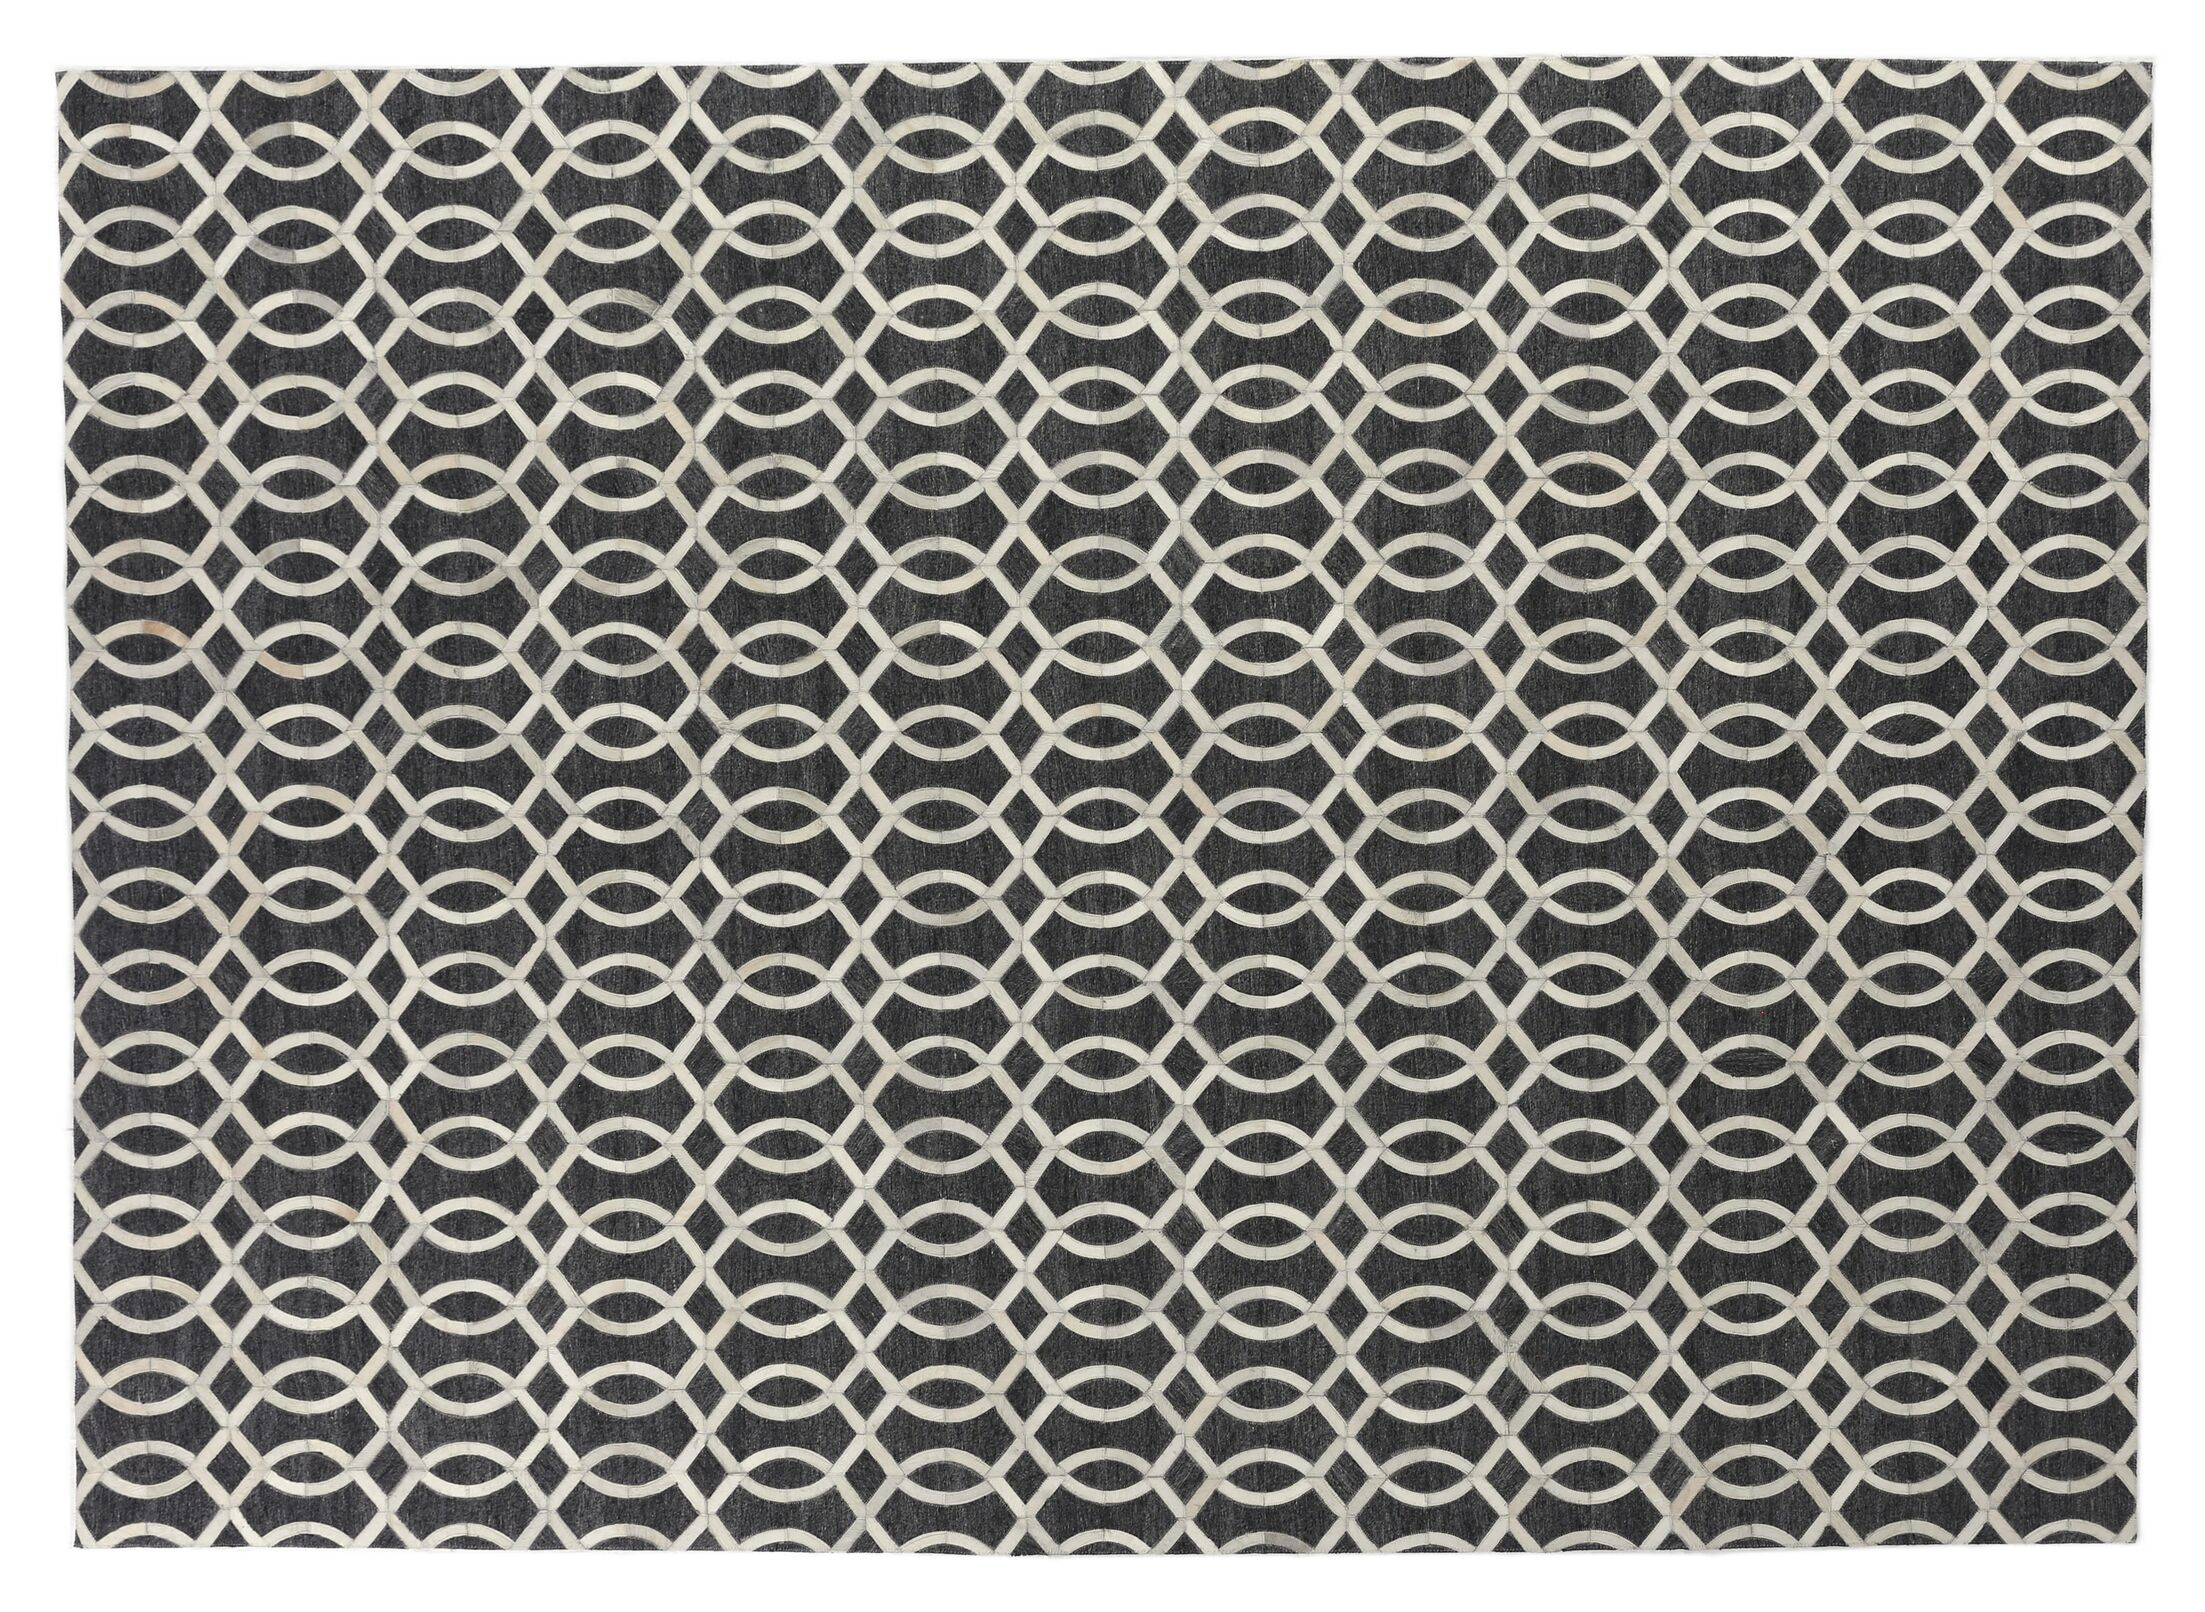 Berlin Charcoal/Ivory Area Rug Rug Size: Rectangle 12' x 15'